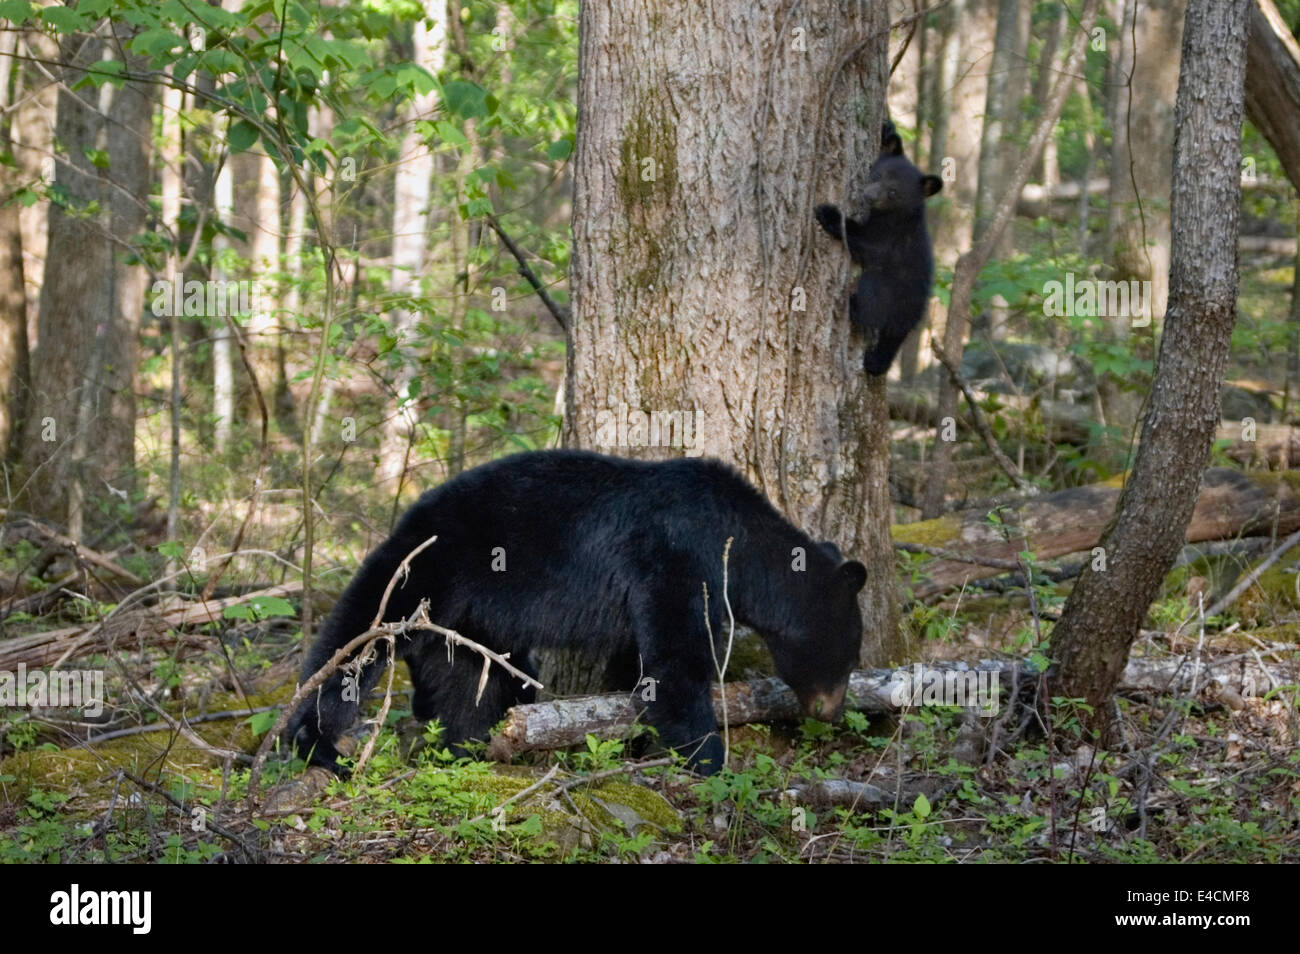 Black Bear Sow and Cub in Spring Forest in the Great Smoky Mountains National Park in Tennnessee - Stock Image